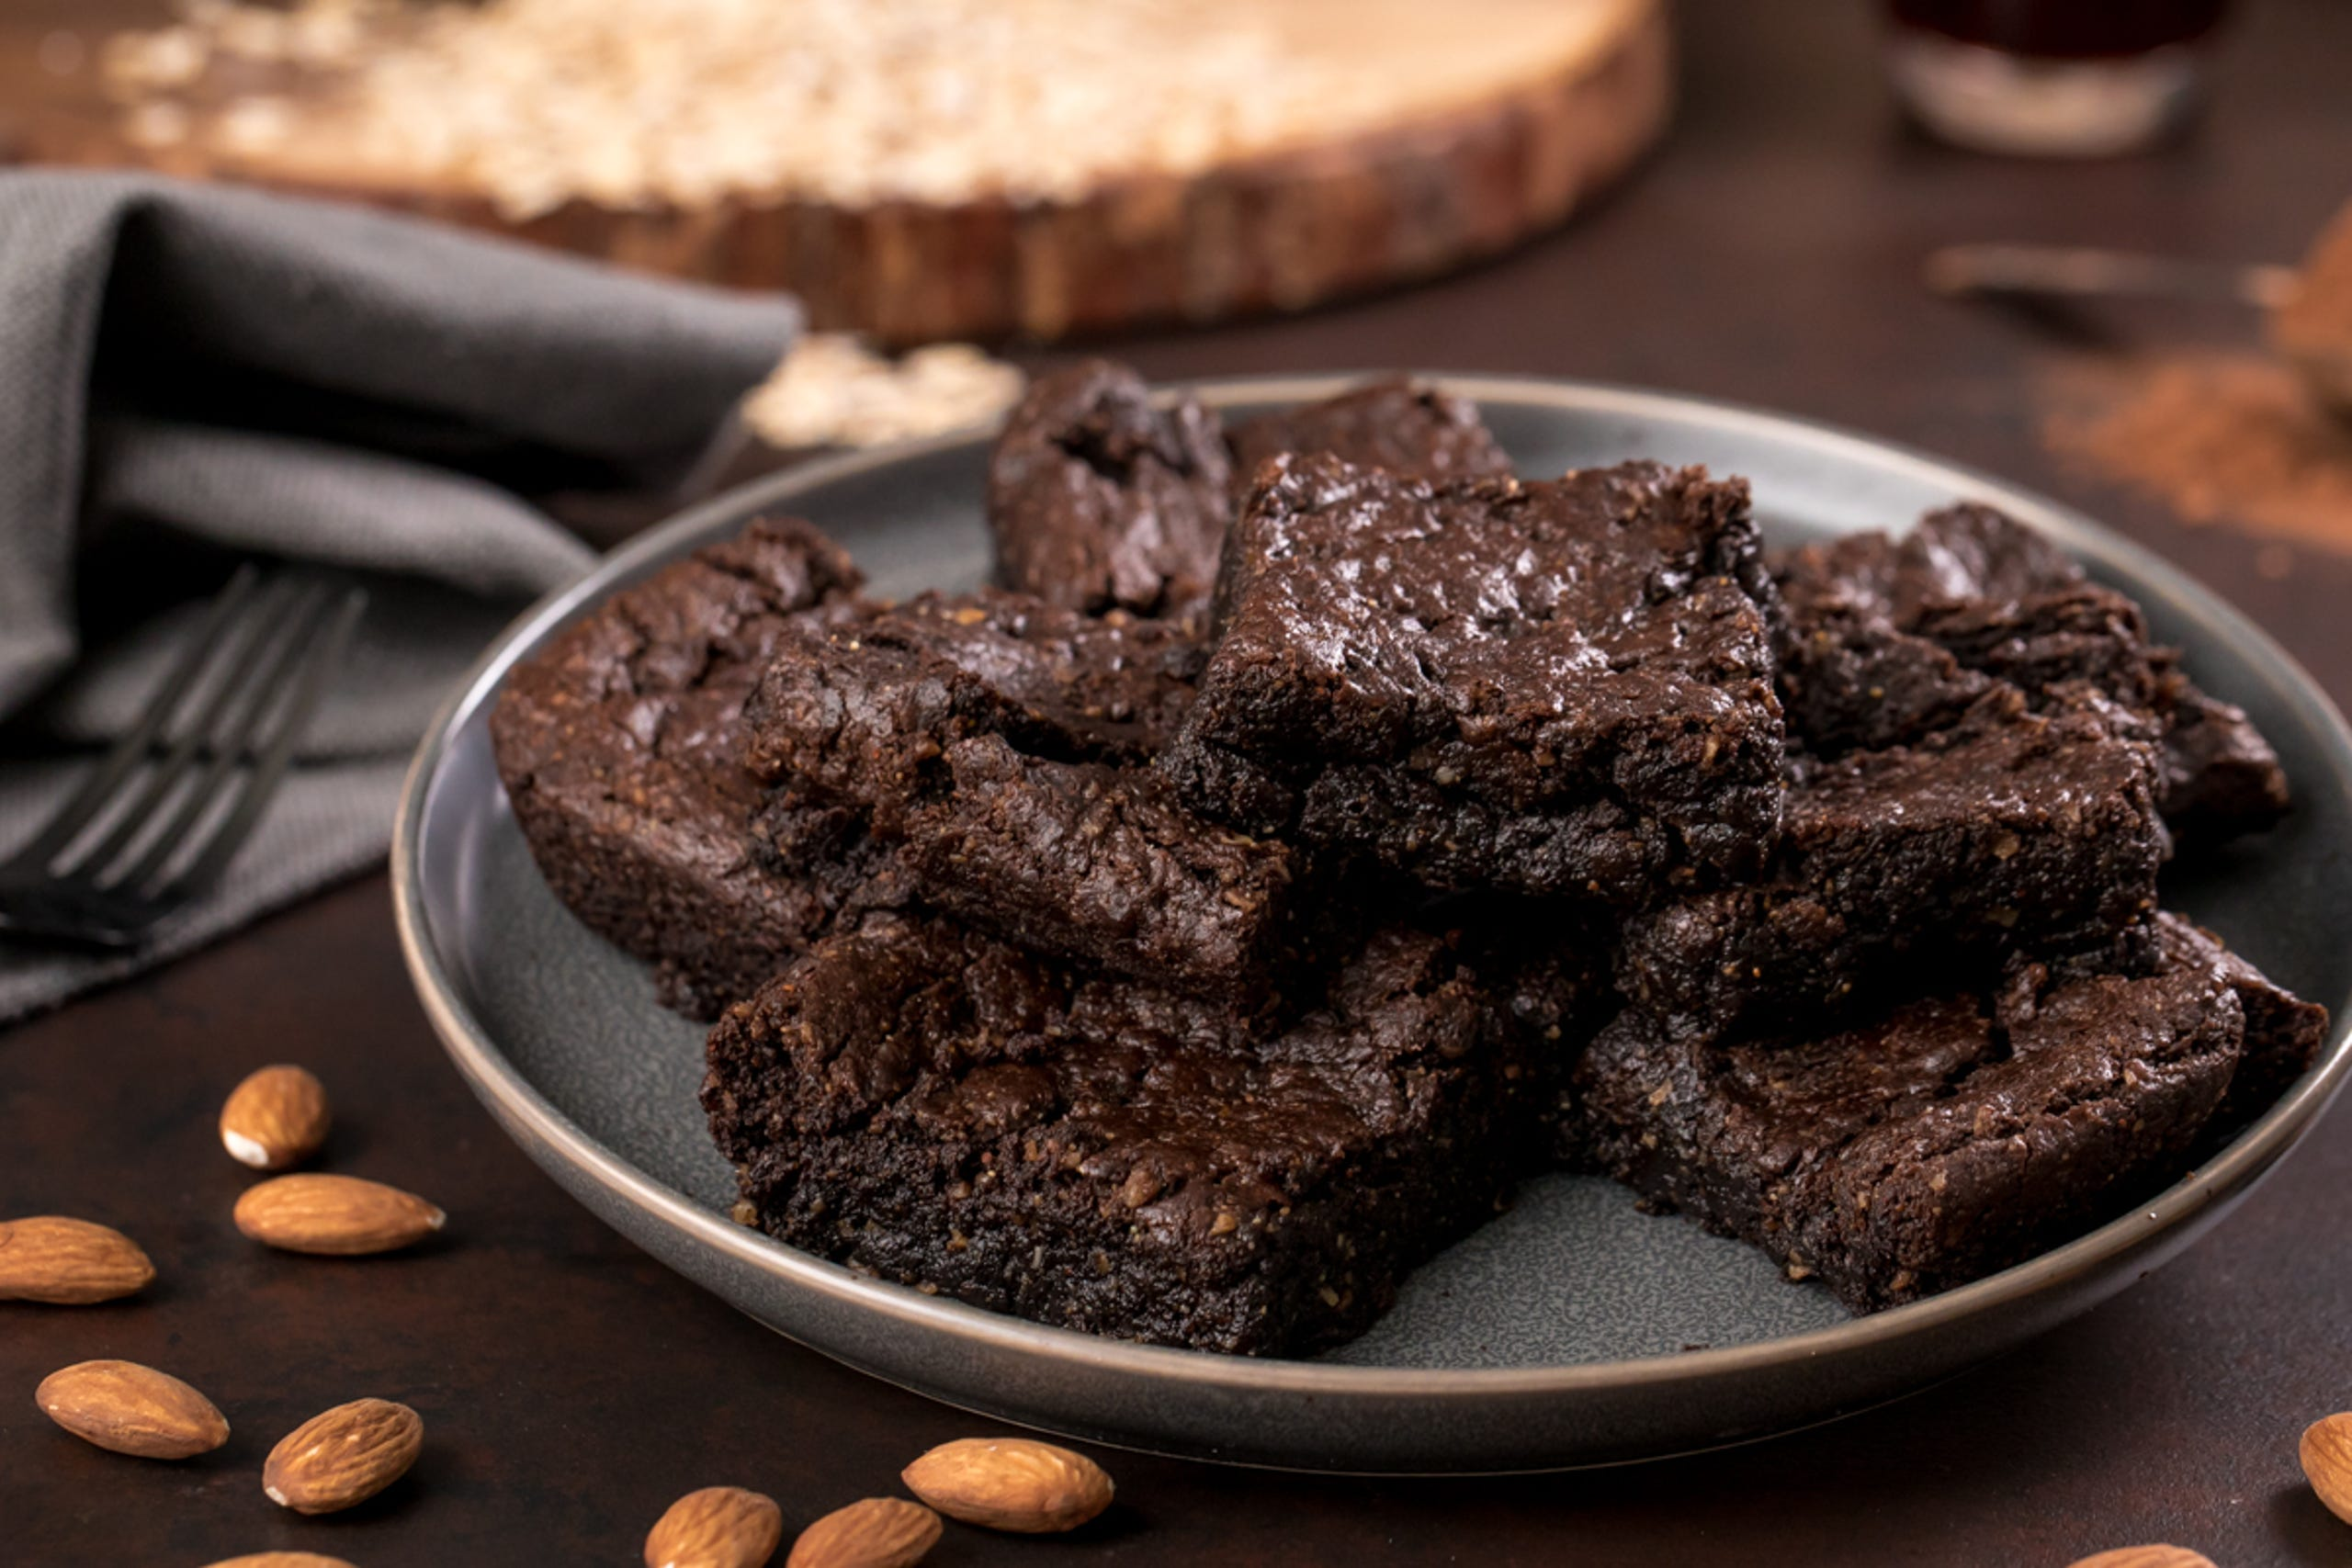 """These<a href=""""https://youtu.be/oJtCLTU5nlk?utm_source=veganvalentinesdesserts"""" target=""""_blank"""">almond butter browniesare fudgy and delicious</a> — and the fact that they're gluten-free and vegan is just a bonus. Katie Higgins of the popular healthy dessert blog<a href=""""https://chocolatecoveredkatie.com/?utm_source=veganvalentinesdesserts"""" rel="""